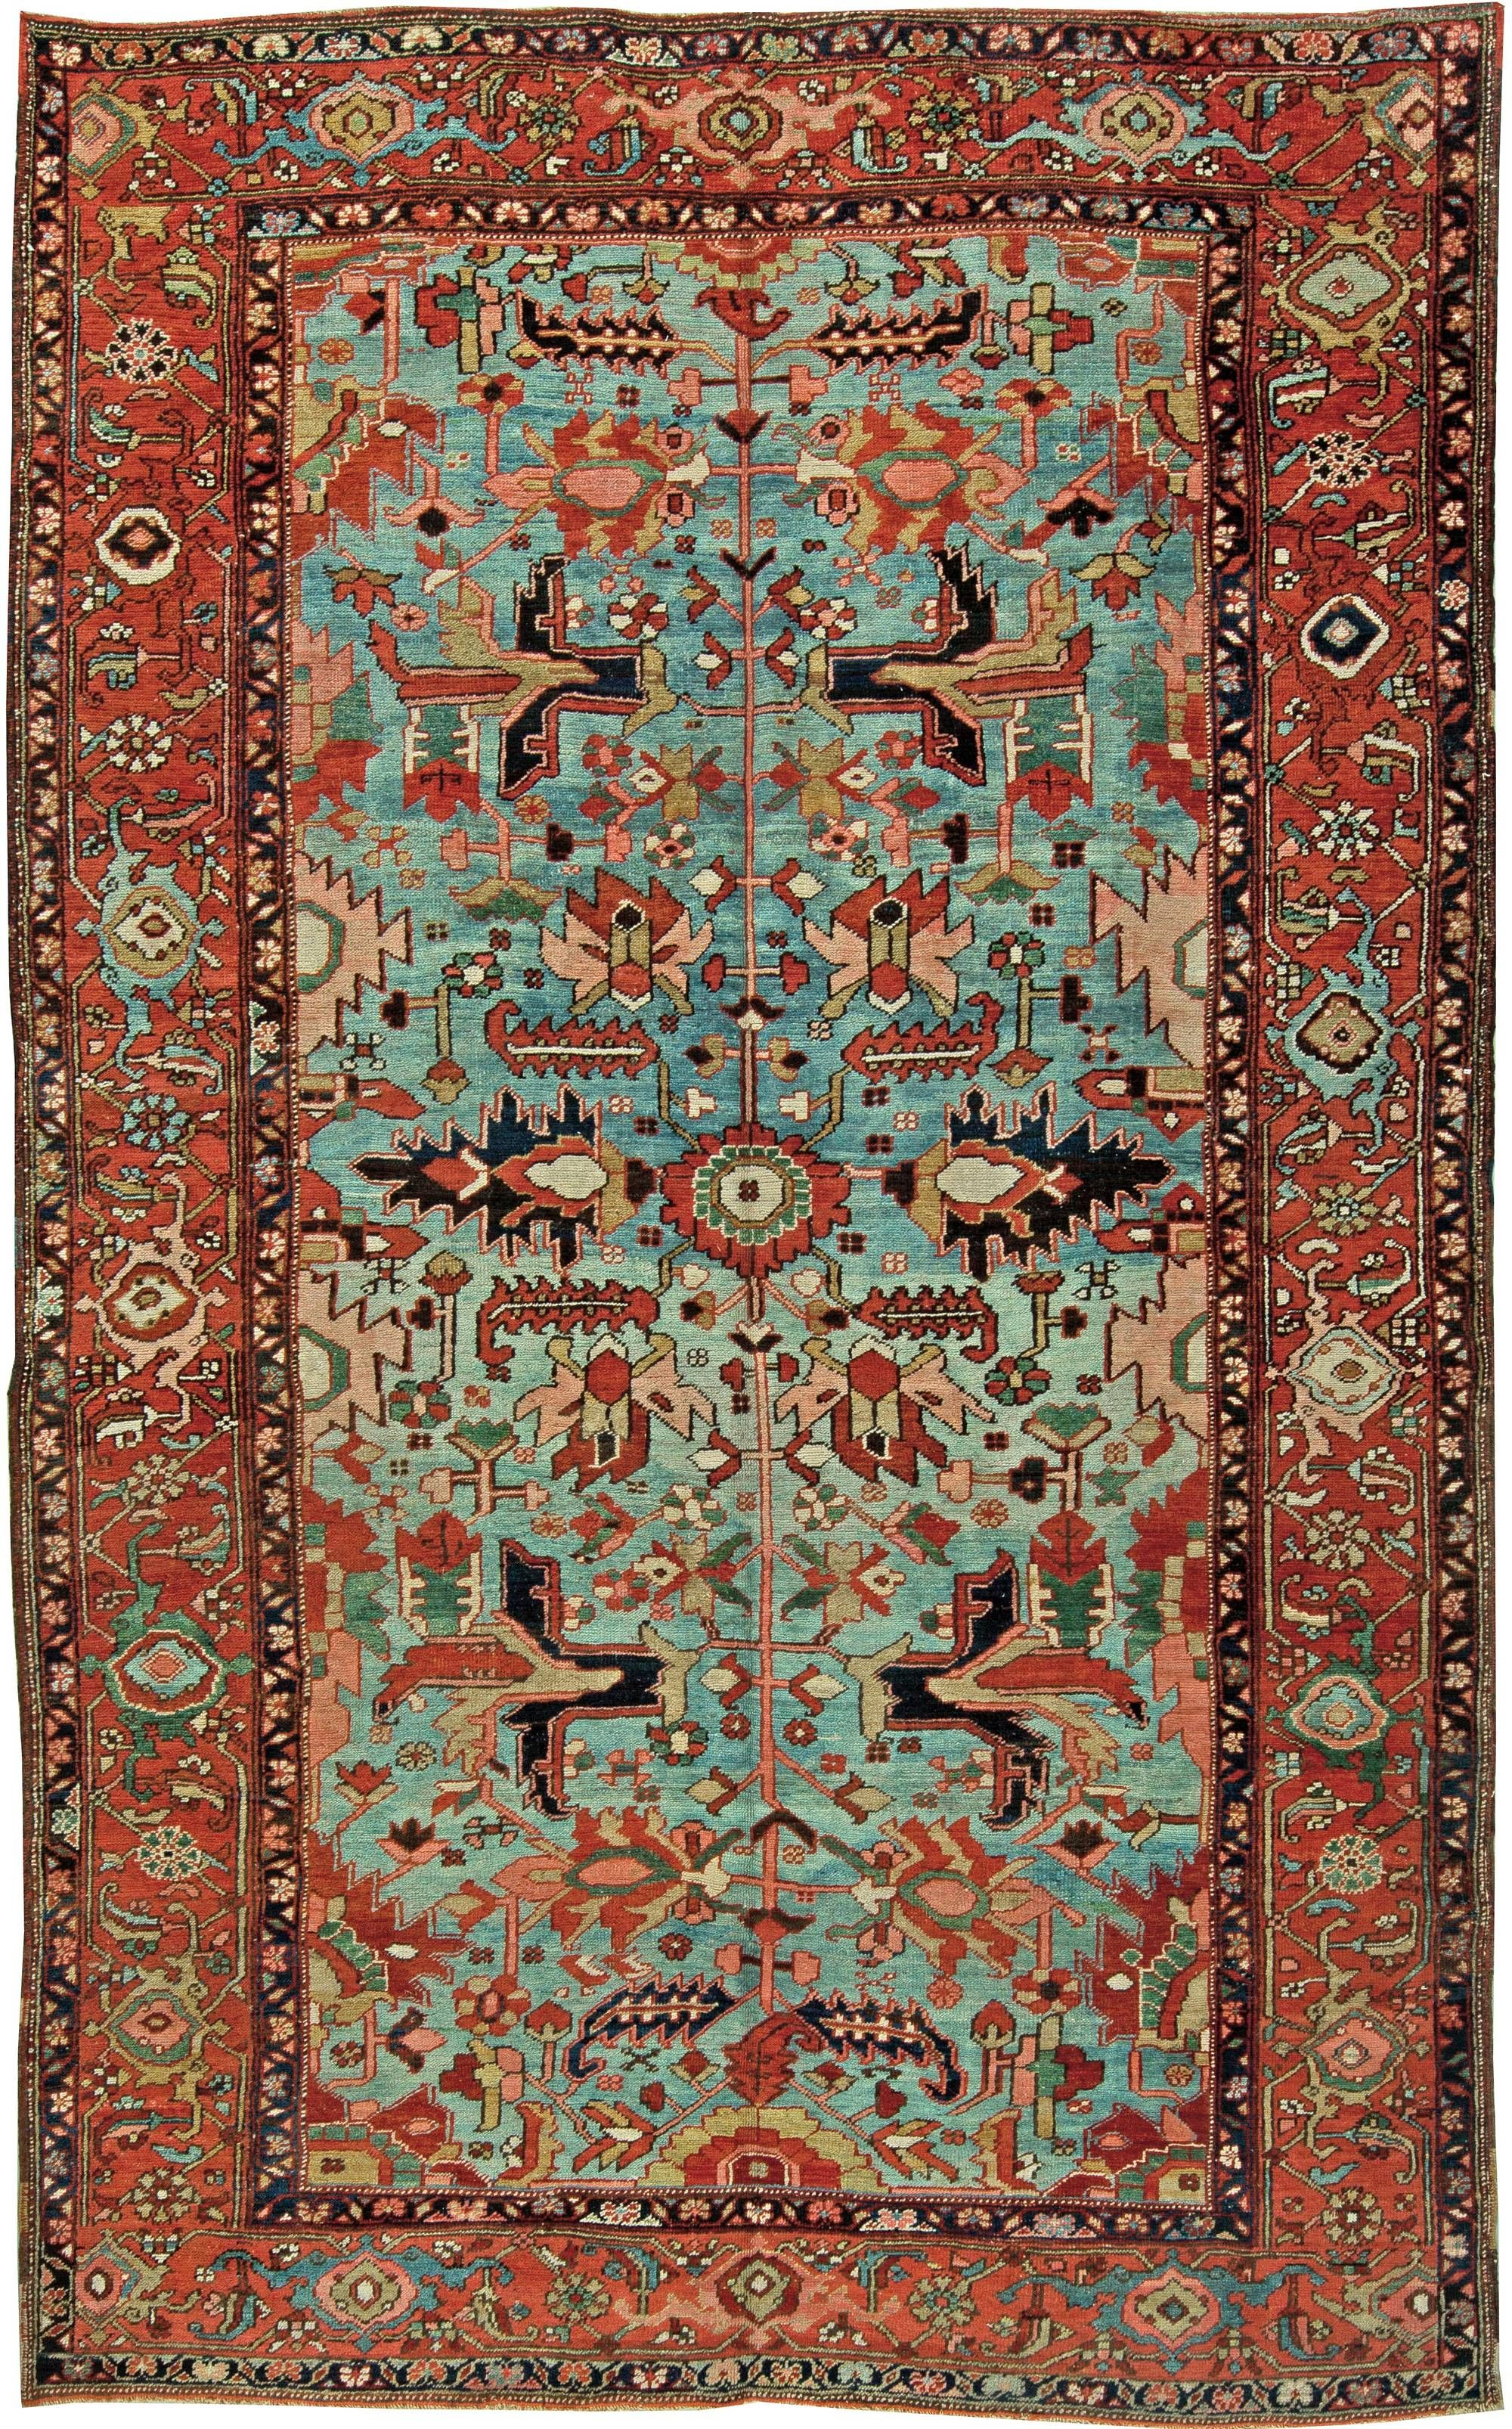 This Heriz Rug Features Antique Persian Patterns By Doris Leslie Blau Rugs